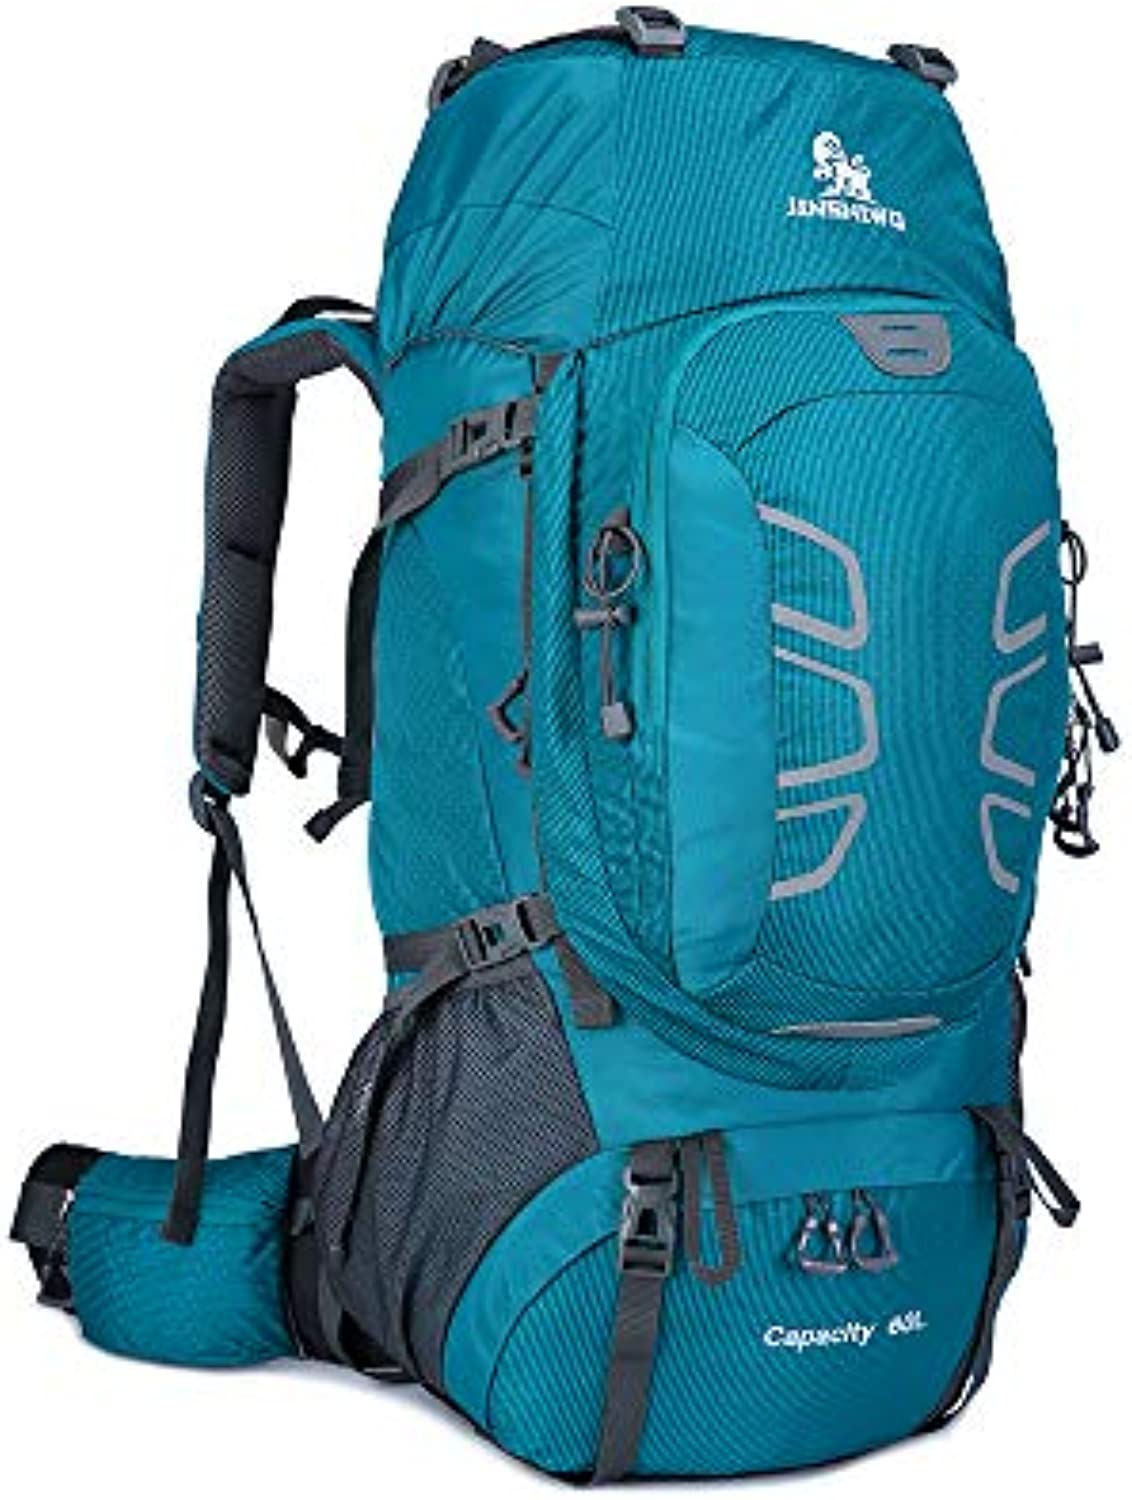 Travel Backpack Shoulder Outdoor, Waterproof and Wearable Multifunctional Hiking Hiking Bag Large Capacity 60L Men and Women Backpack